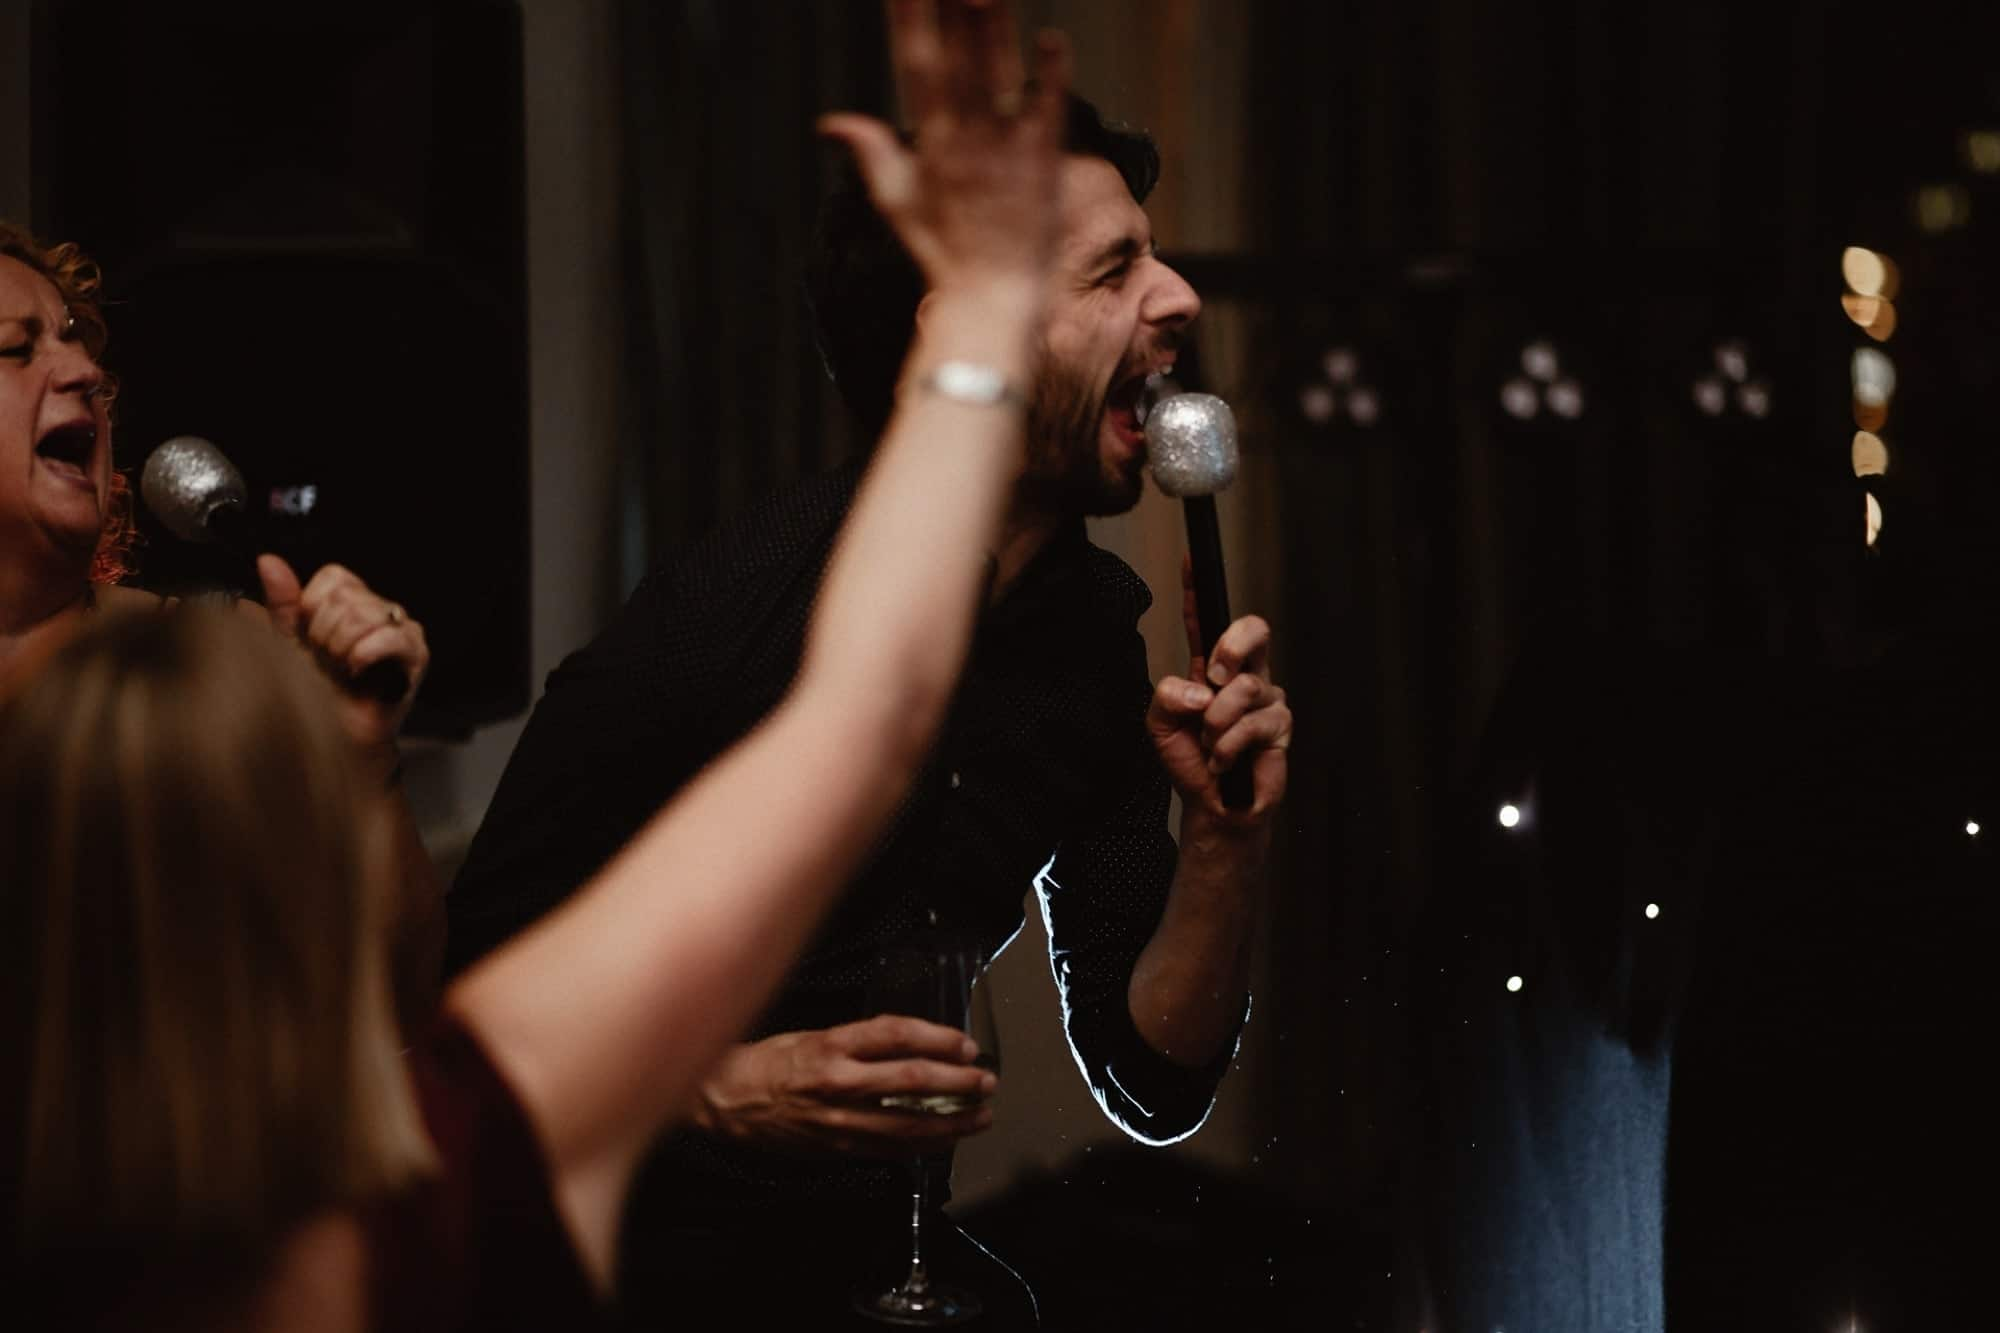 Wedding guest with microphone singing